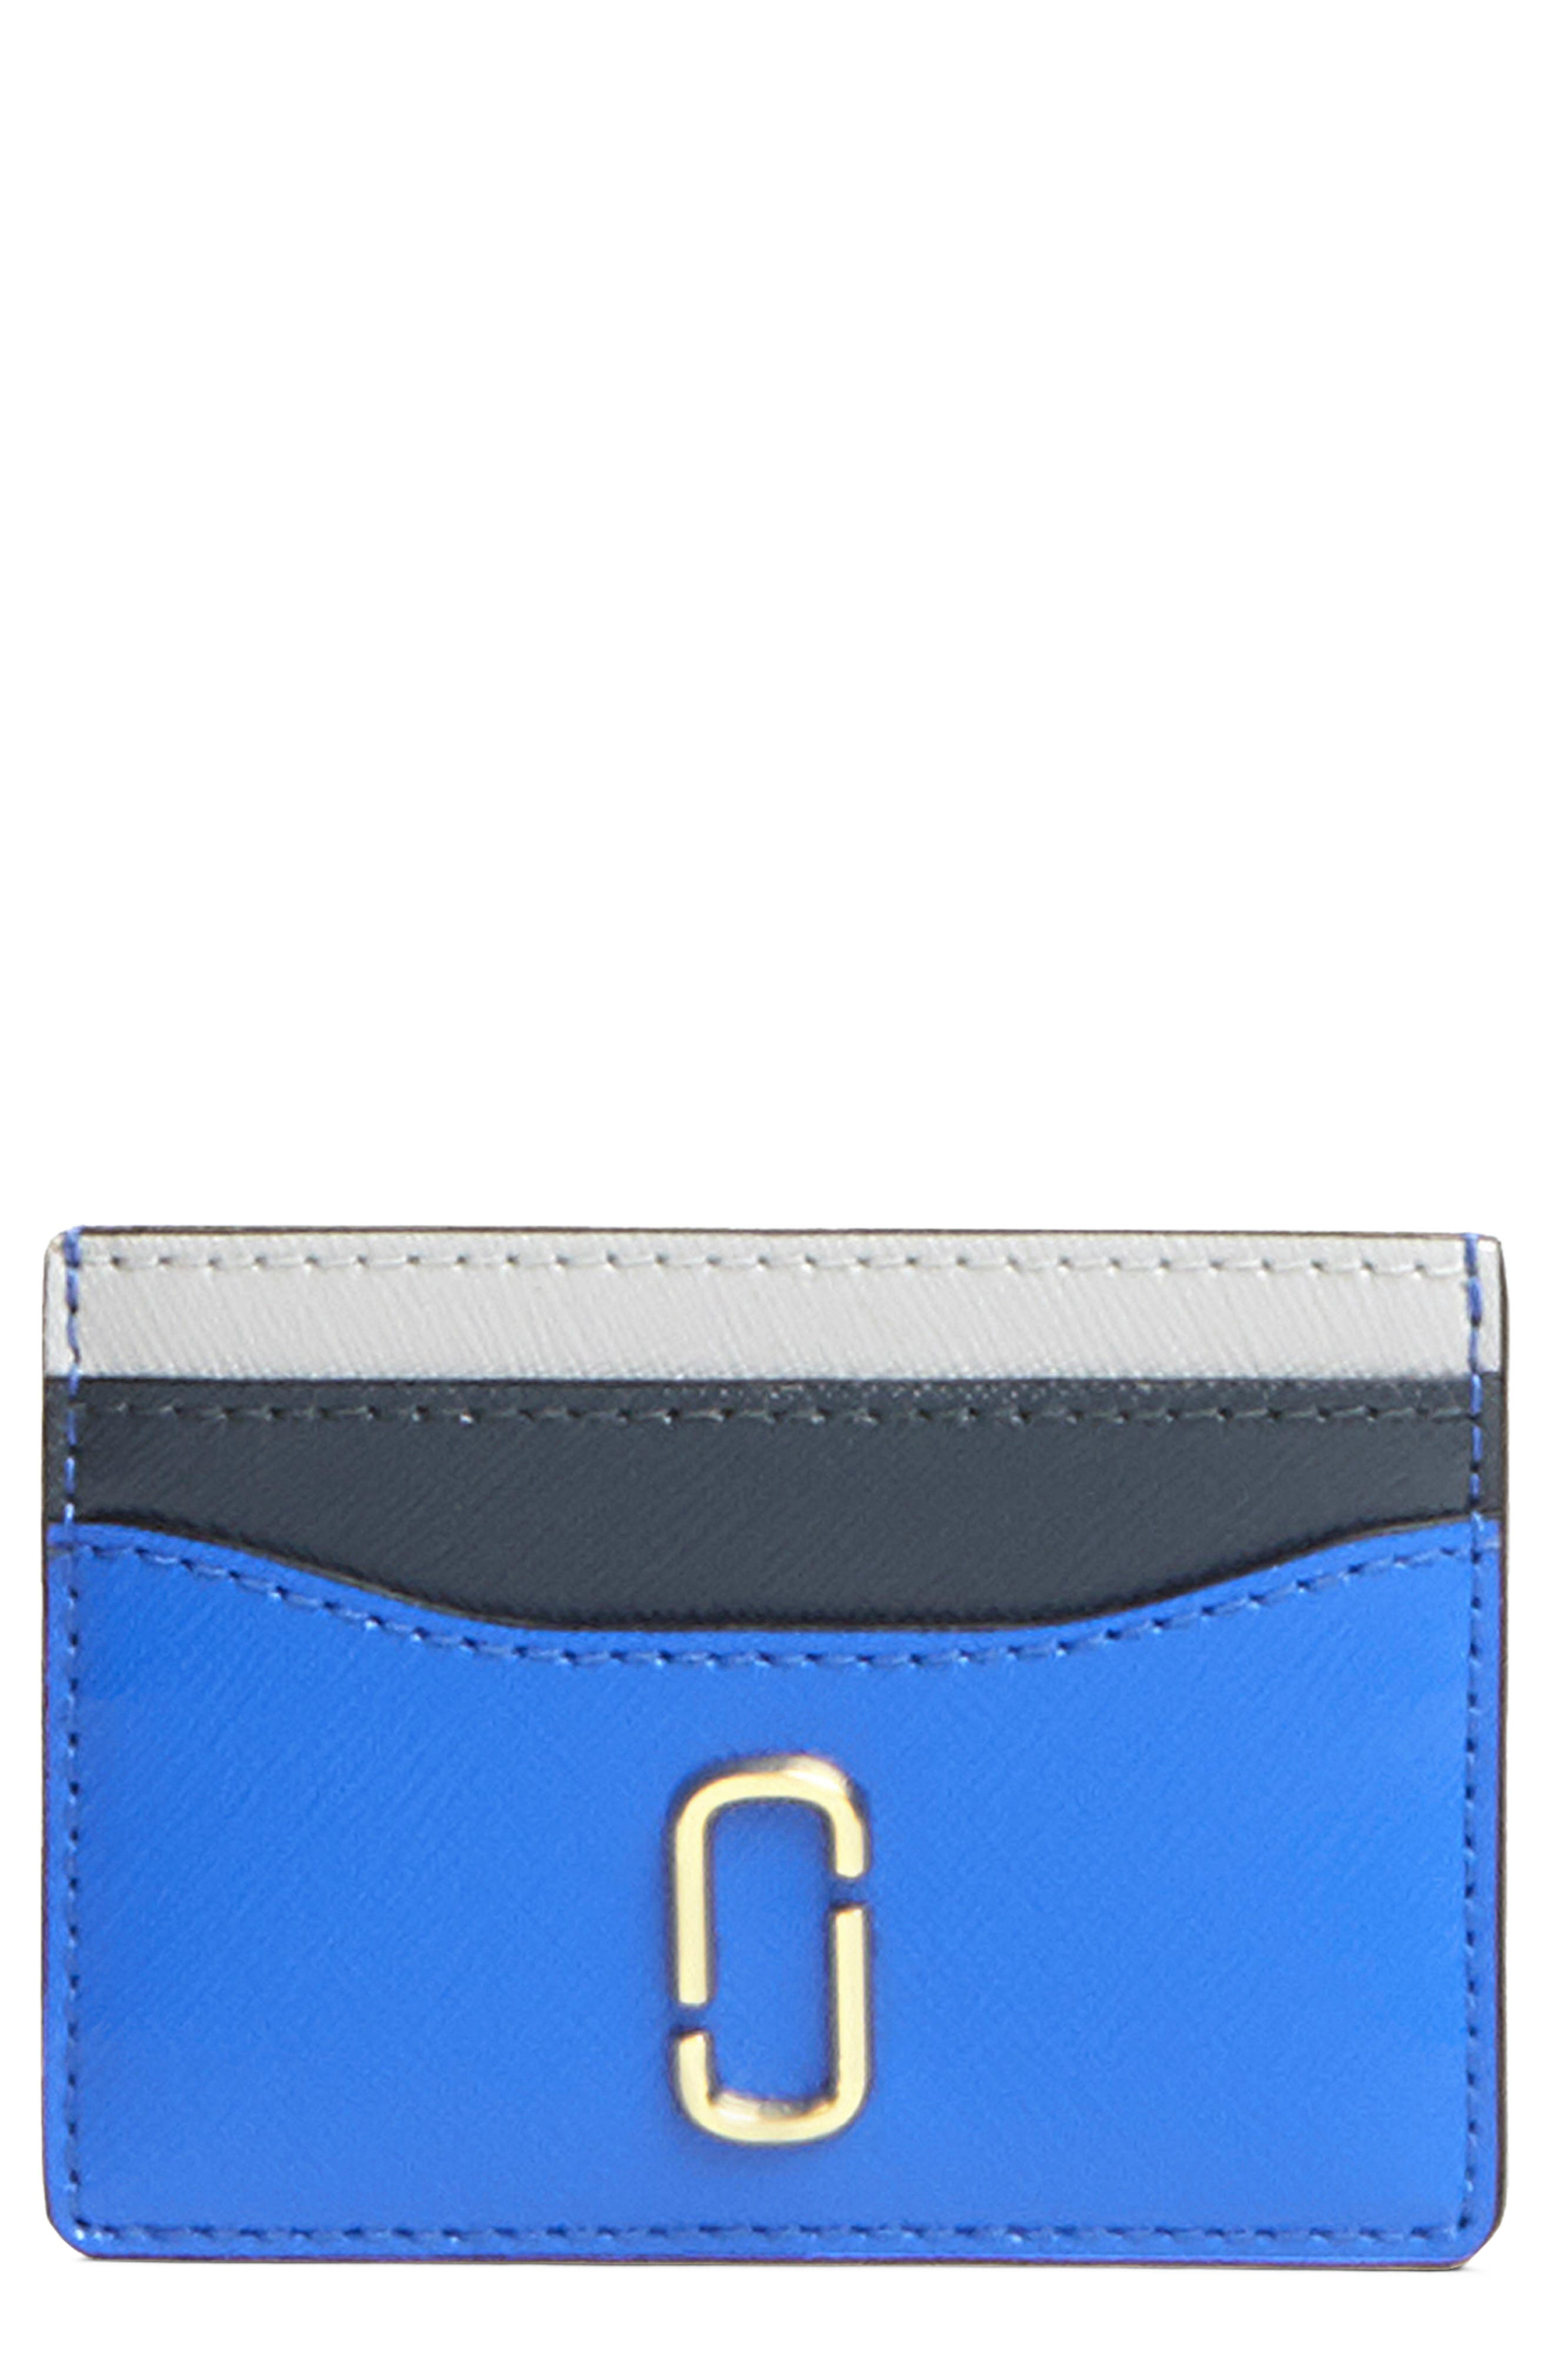 Snapshot Leather Card Case,                             Main thumbnail 1, color,                             400